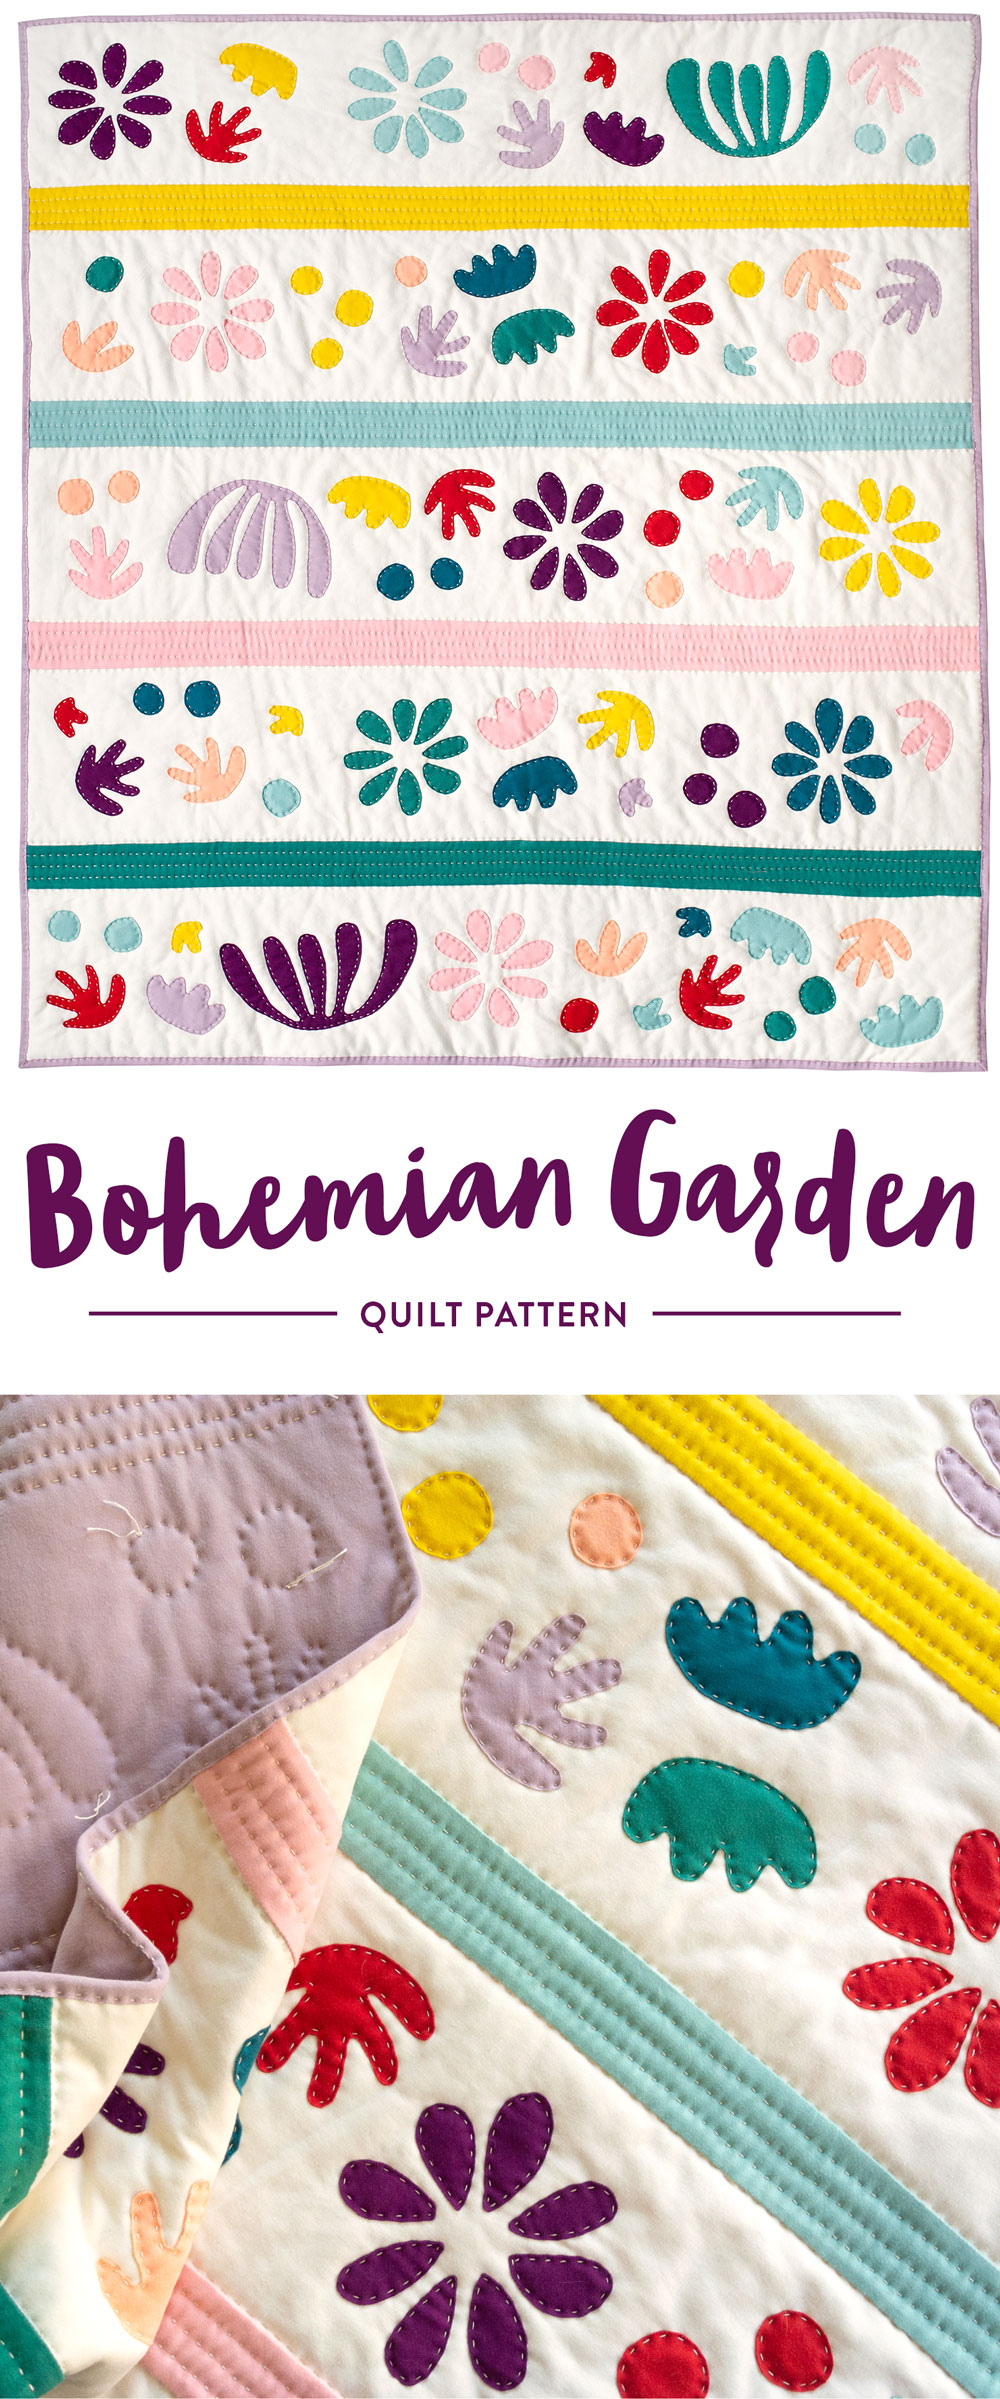 The Bohemian Garden quilt pattern can be made using regular quilt-weight cotton or cozy knit fabric! Check out the video tutorial on how to hand sew appliqué.